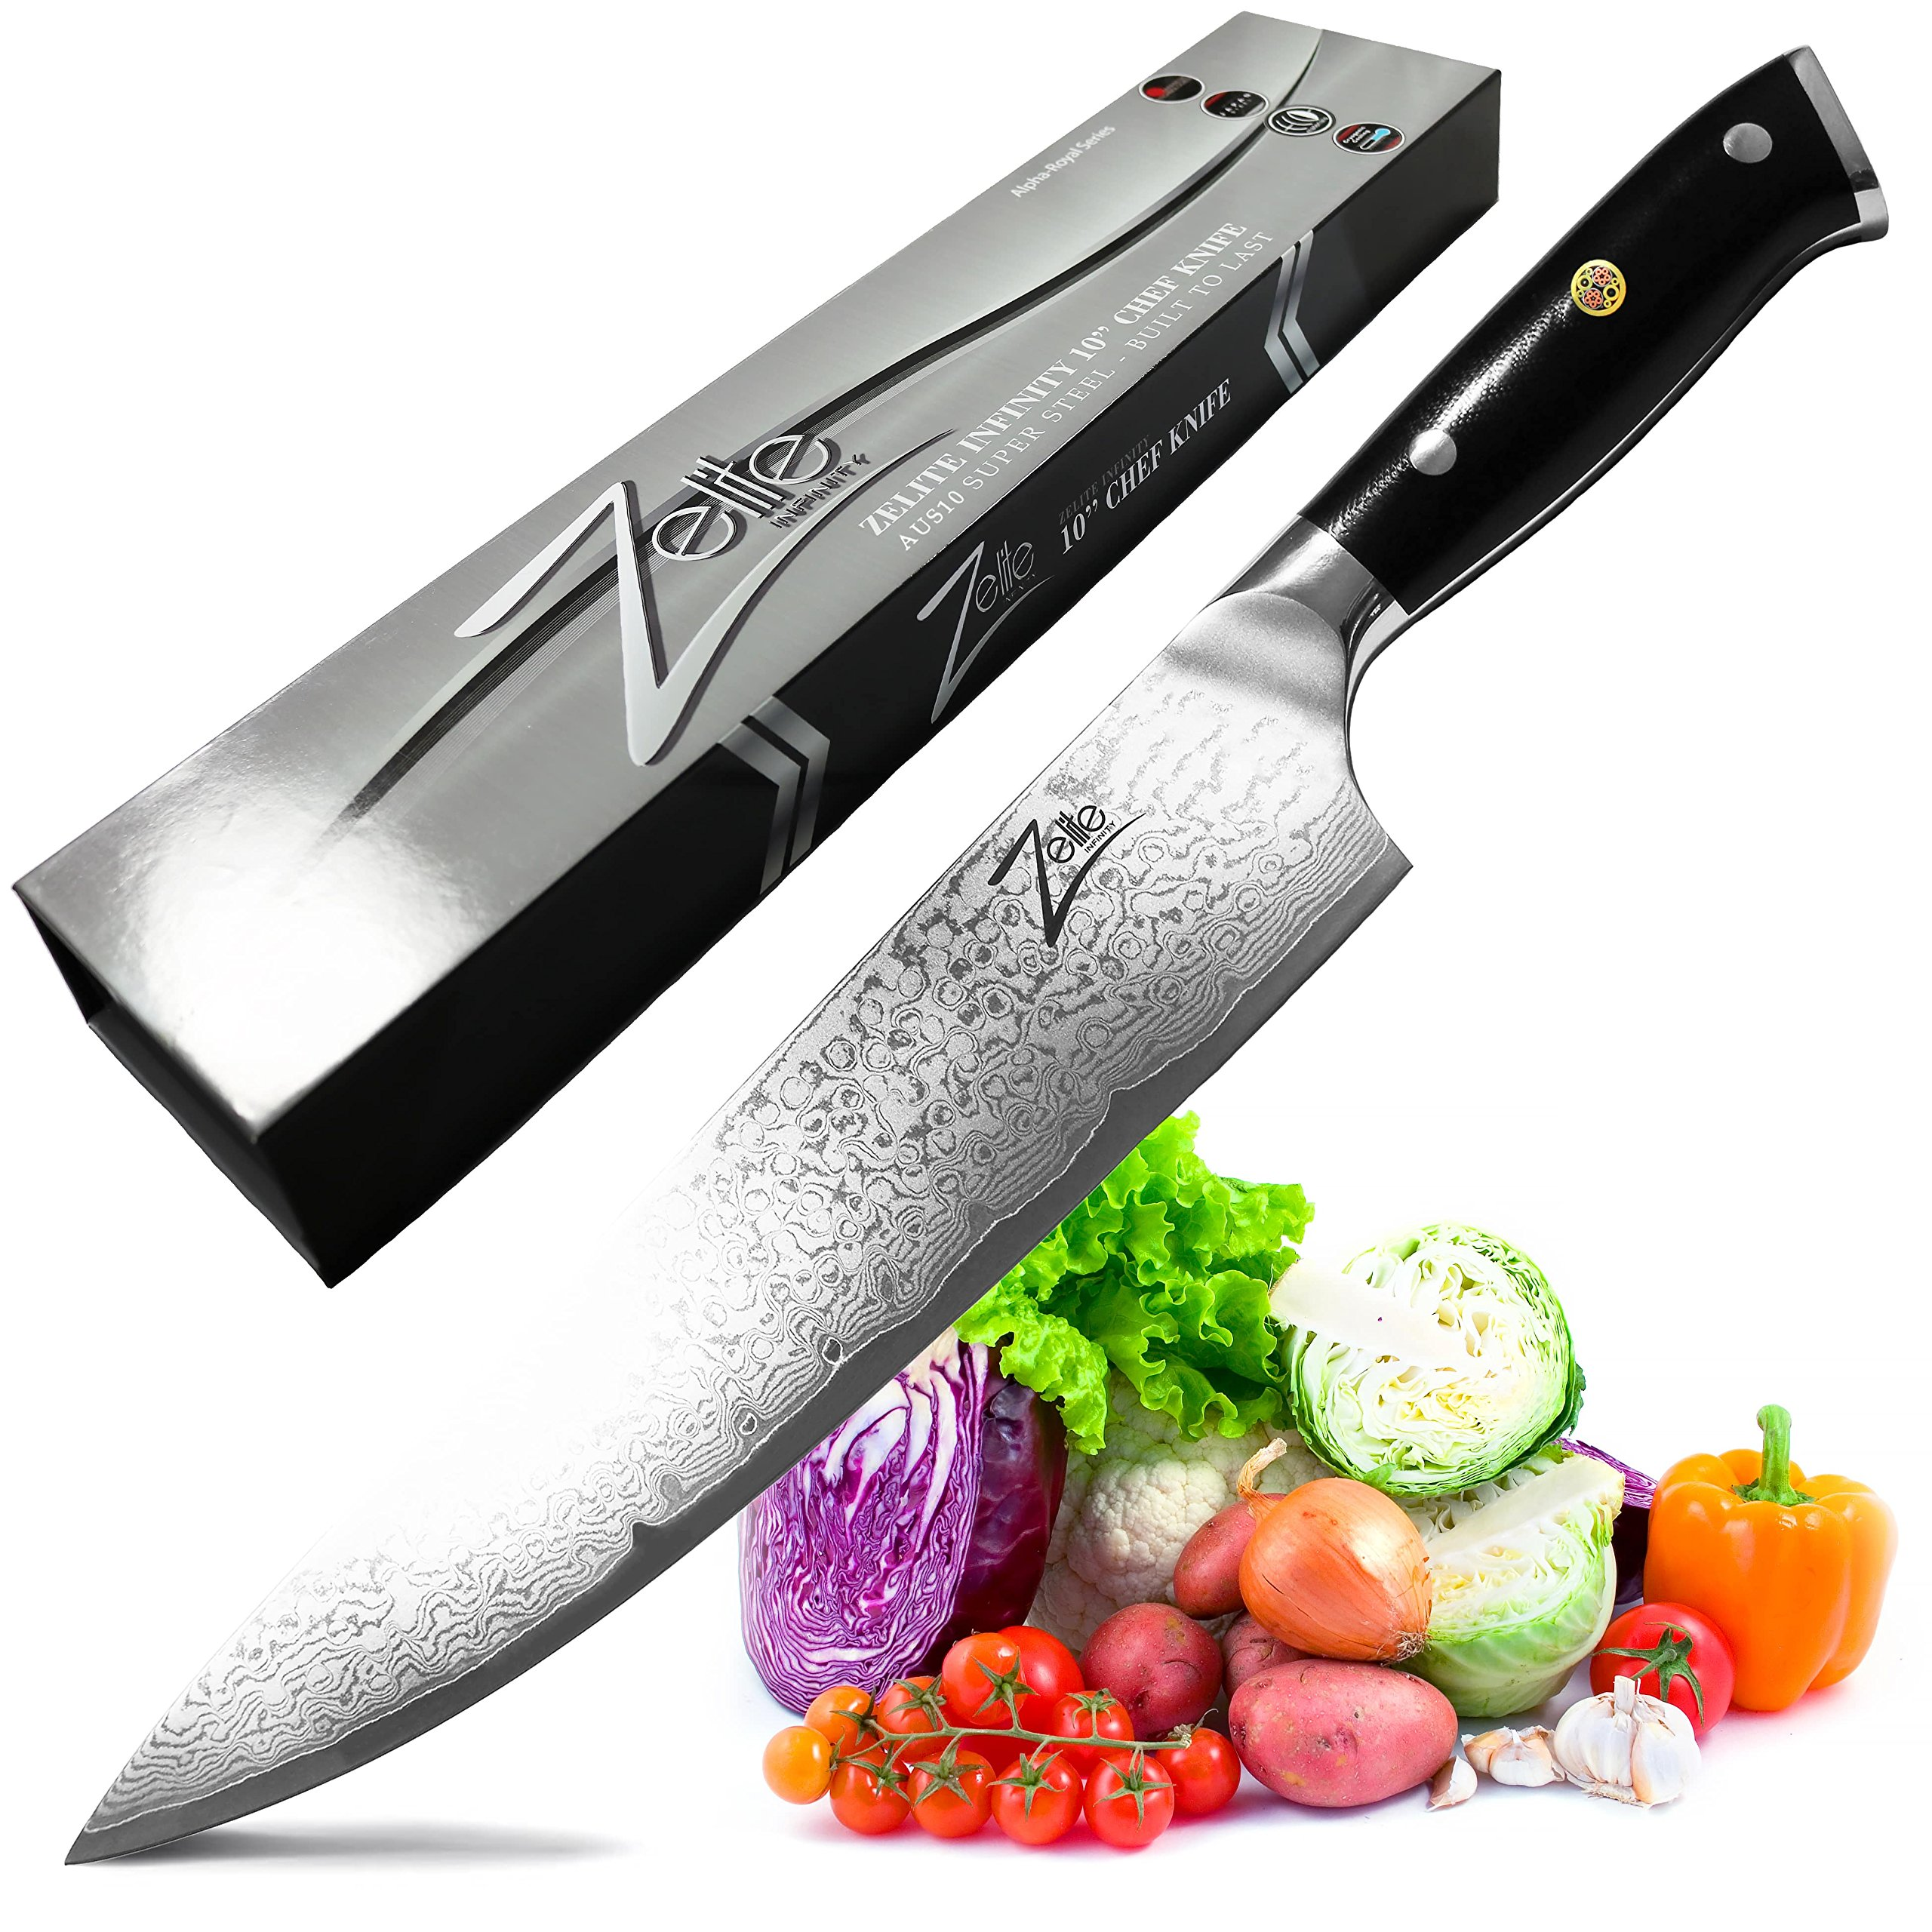 ZELITE INFINITY Chef Knife 10 Inch >> Alpha-Royal Series >> Best Quality Japanese VG10 Super Steel 67 Layer High Carbon Stainless Steel, Incredible G10 Handle, Full-tang, Long & Deep 48mm Chefs Blade by Zelite Infinity